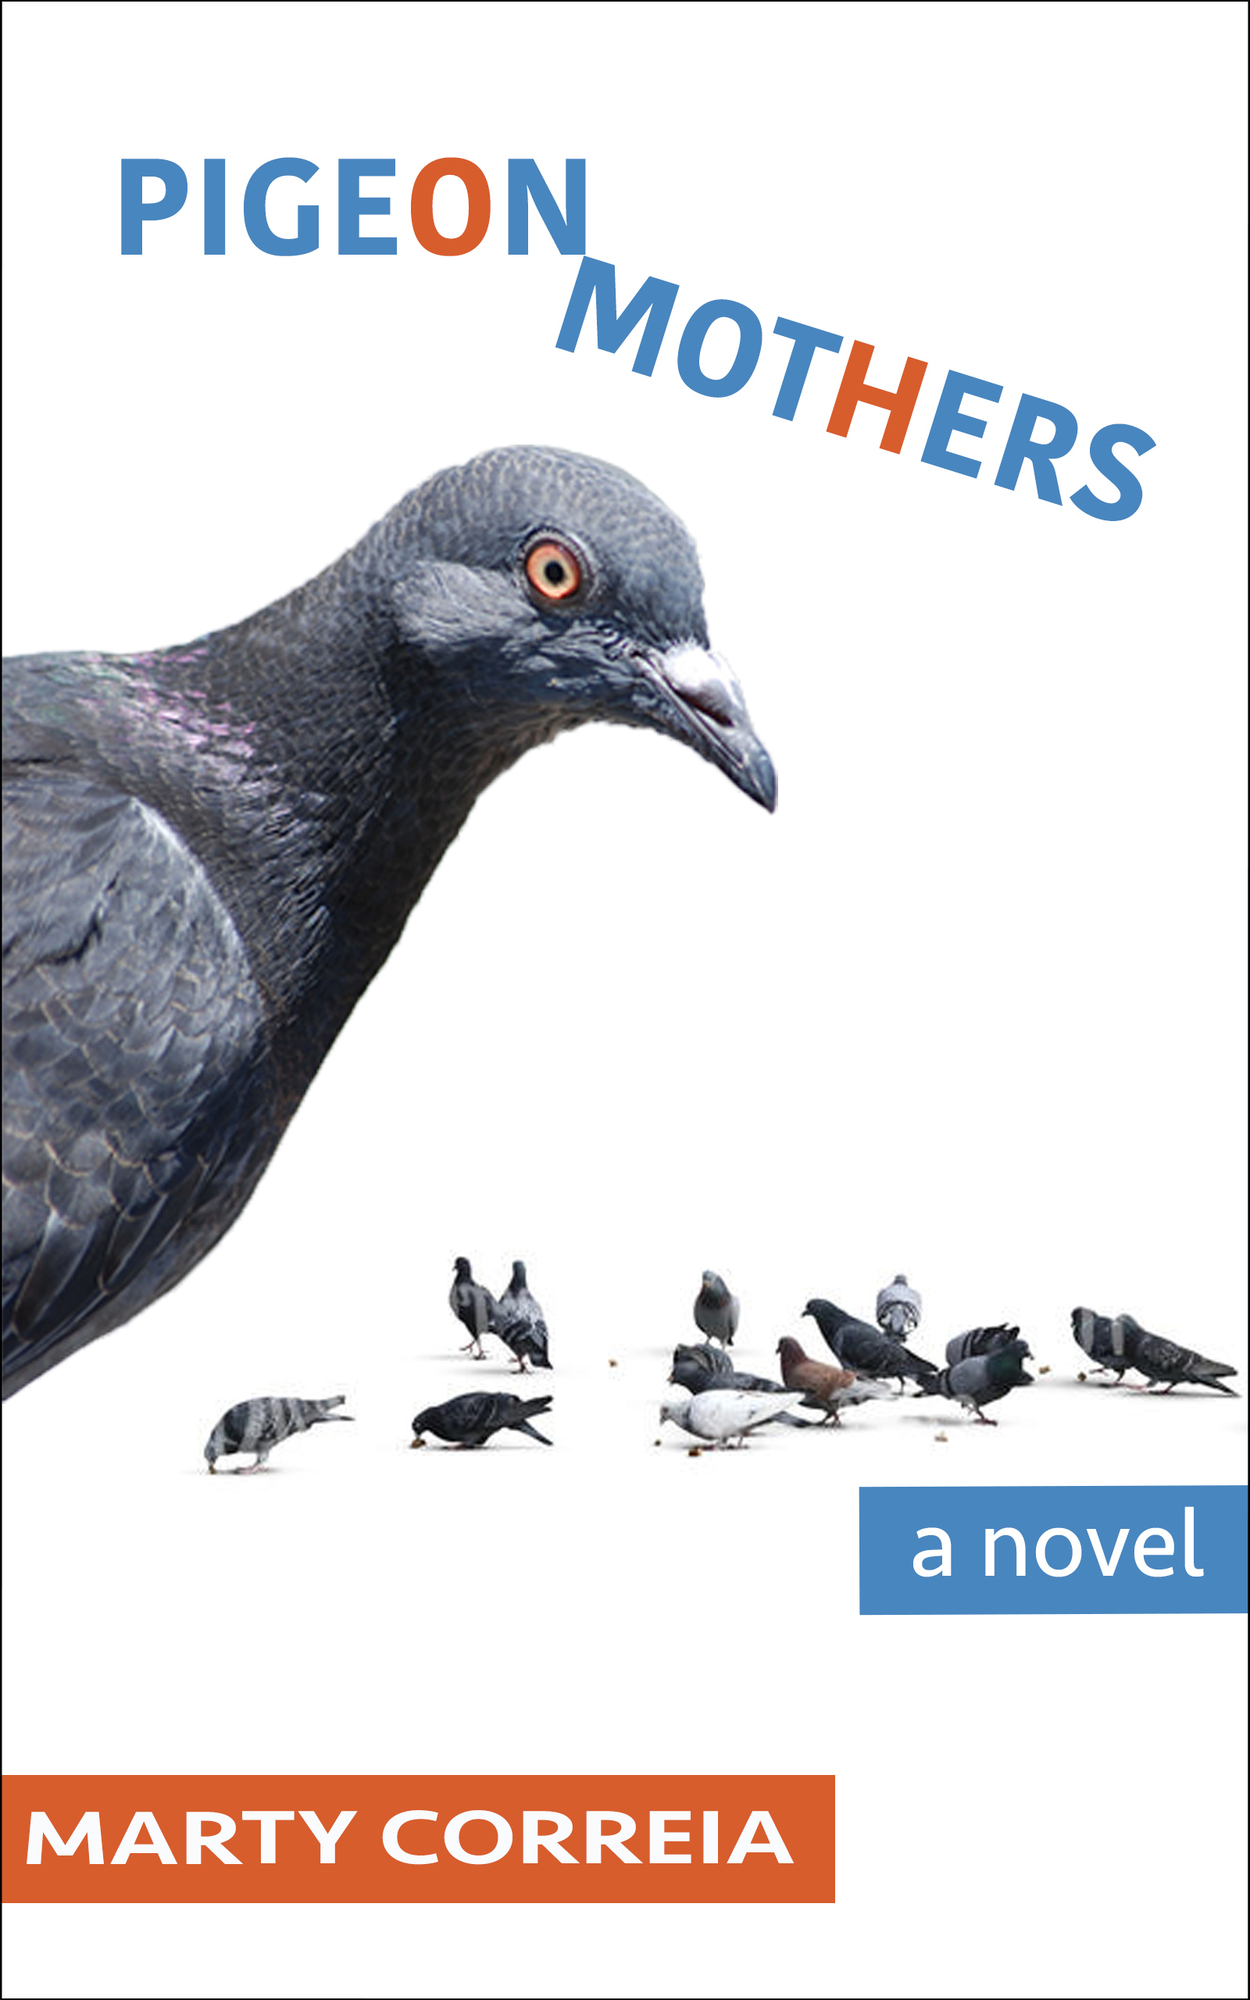 Pigeon Mothers by Marty Correia | Reedsy Discovery